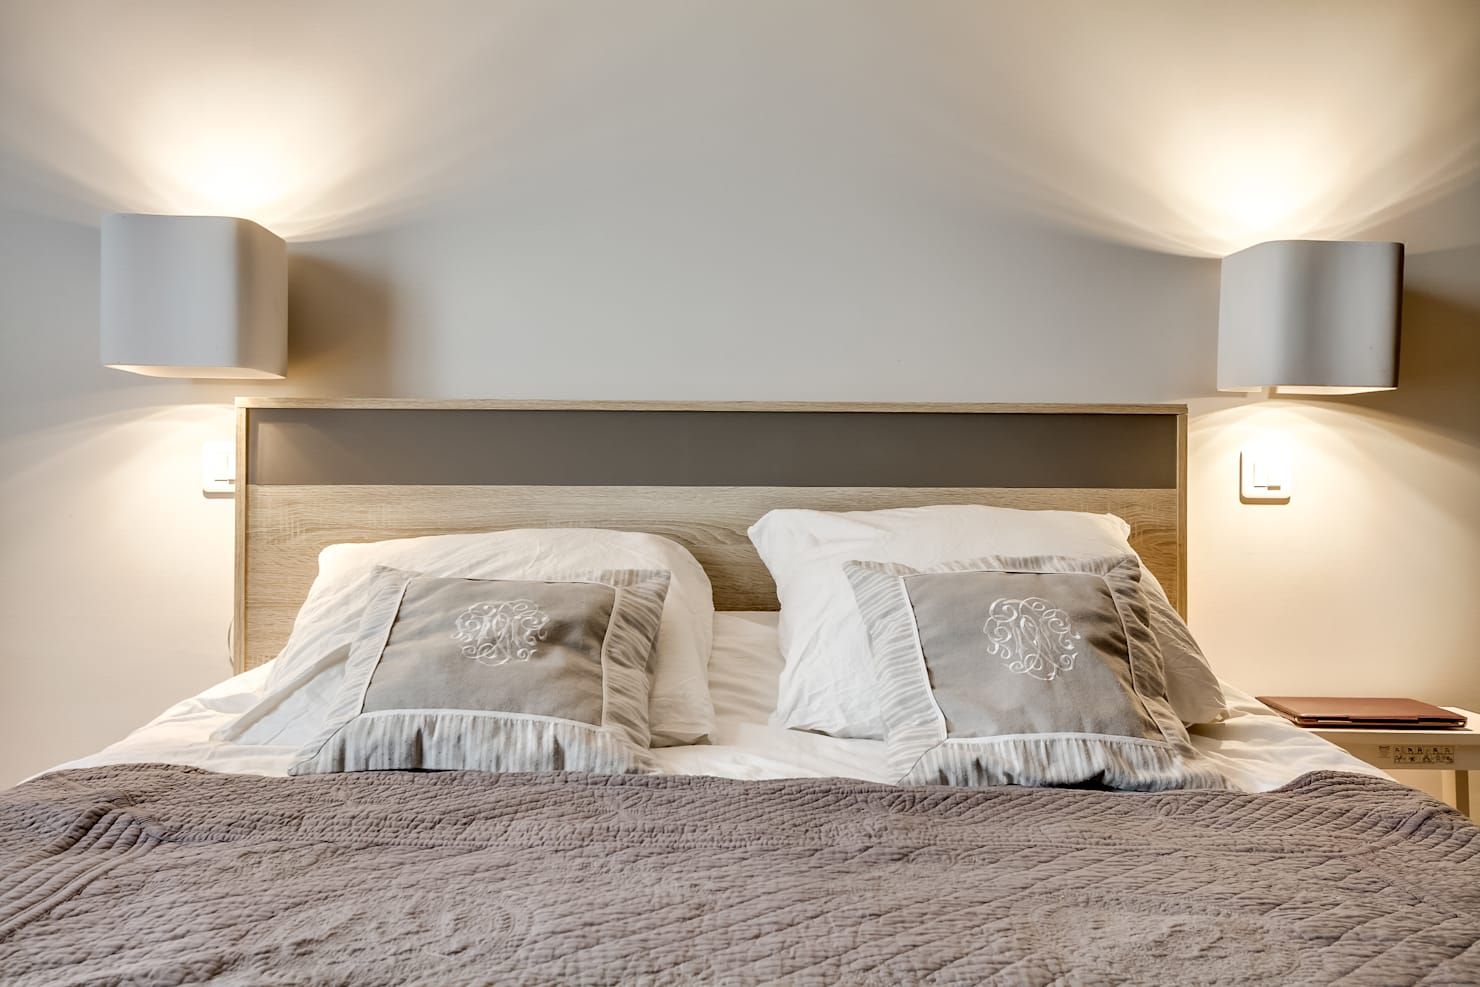 Bed decoration ideas for better sleep